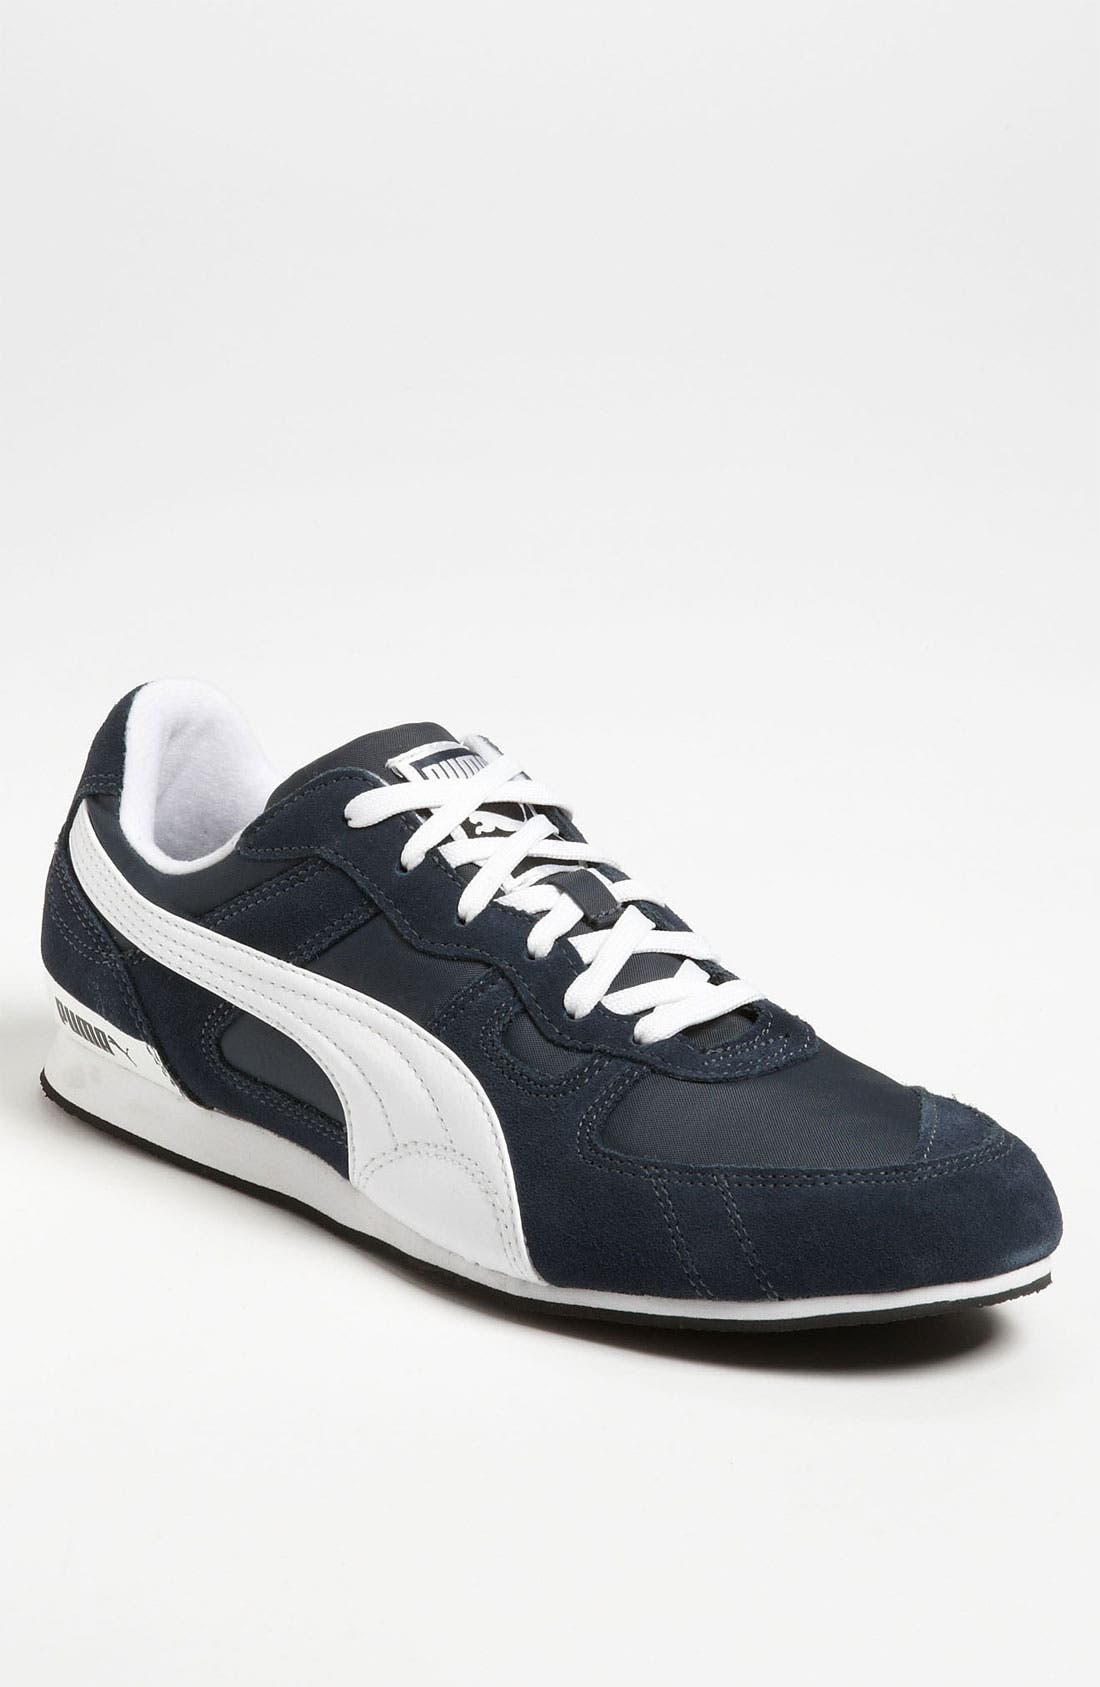 Alternate Image 1 Selected - PUMA 'Bayndyt' Sneaker (Men) (Online Exclusive)